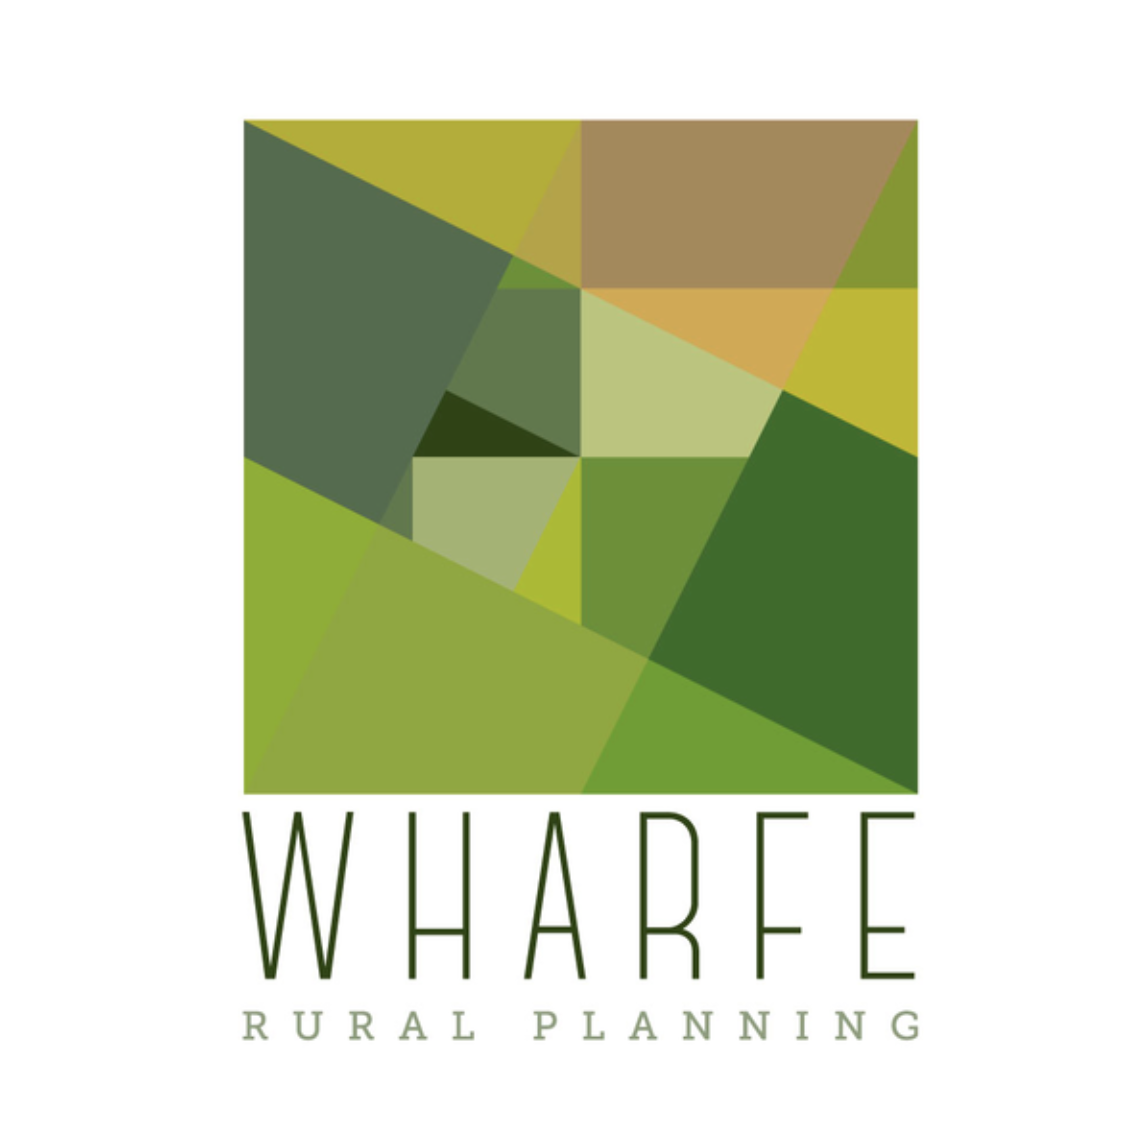 Wharfe Rural Planning, Knutsford, Cheshire